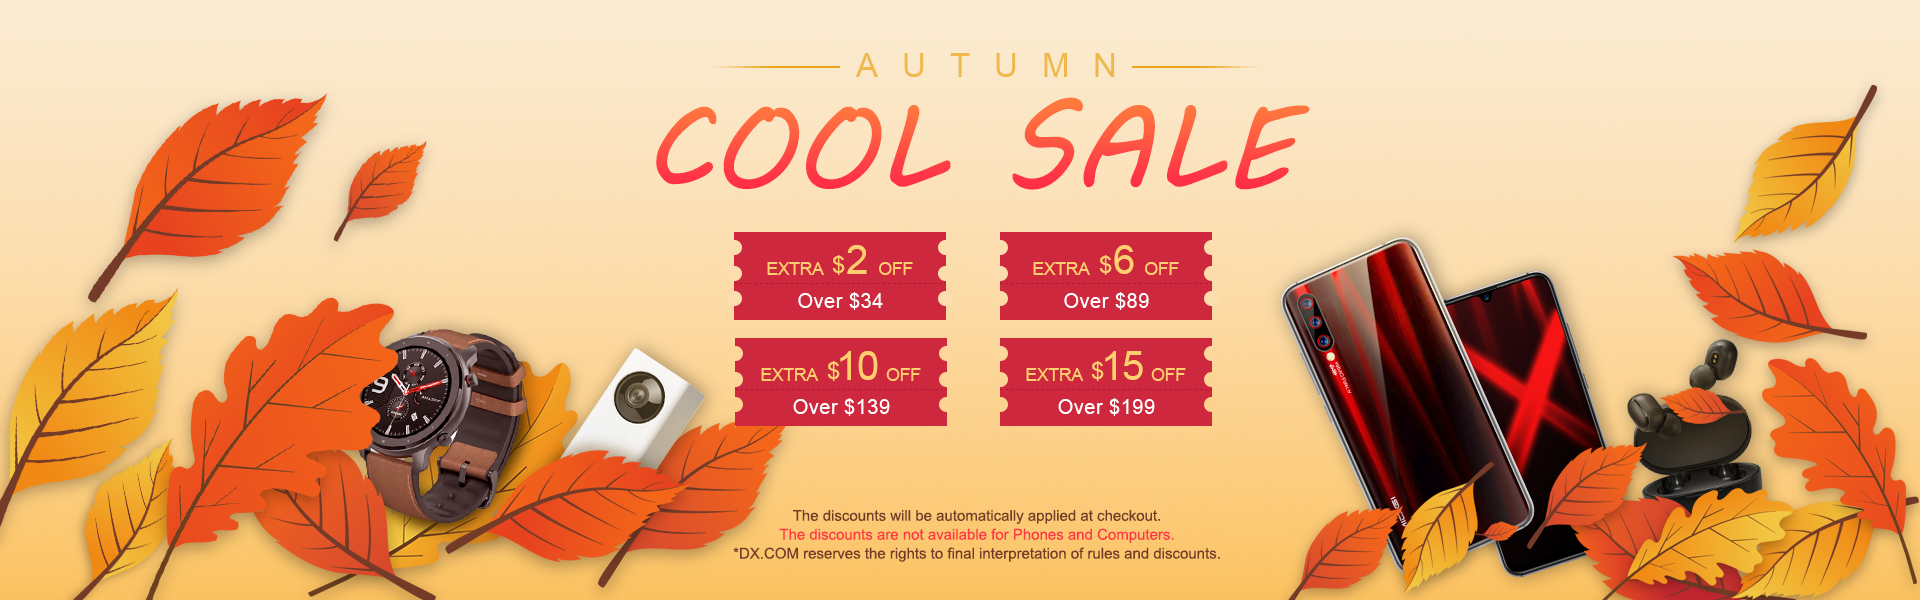 Extra $15 OFF! Autumn Cool Sale Has Star